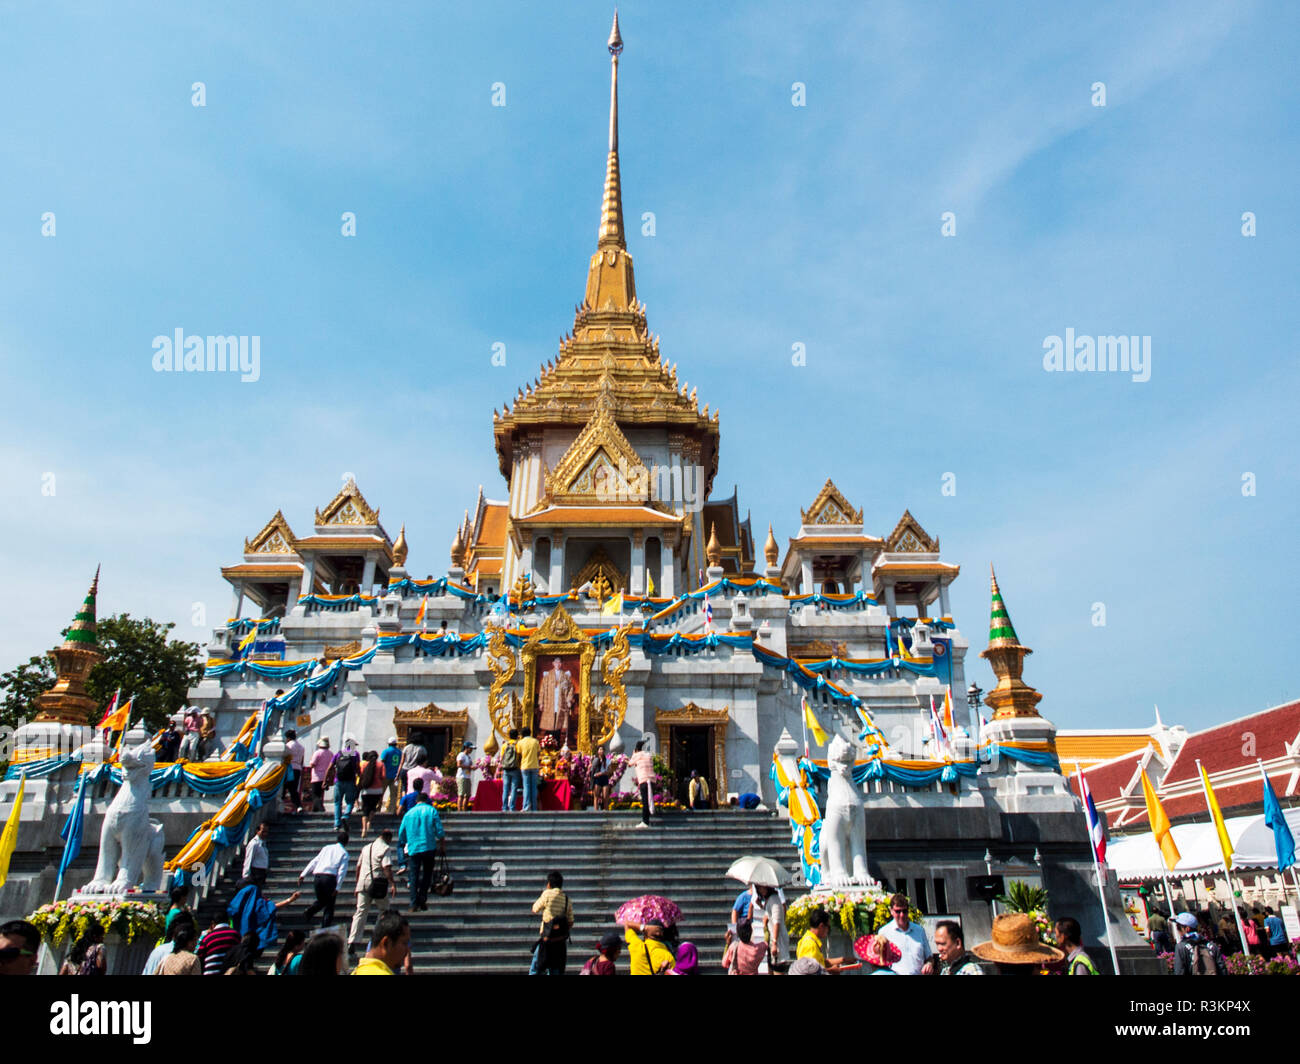 Thailand Bangkok Wat Trimitr Decorated For The Kings